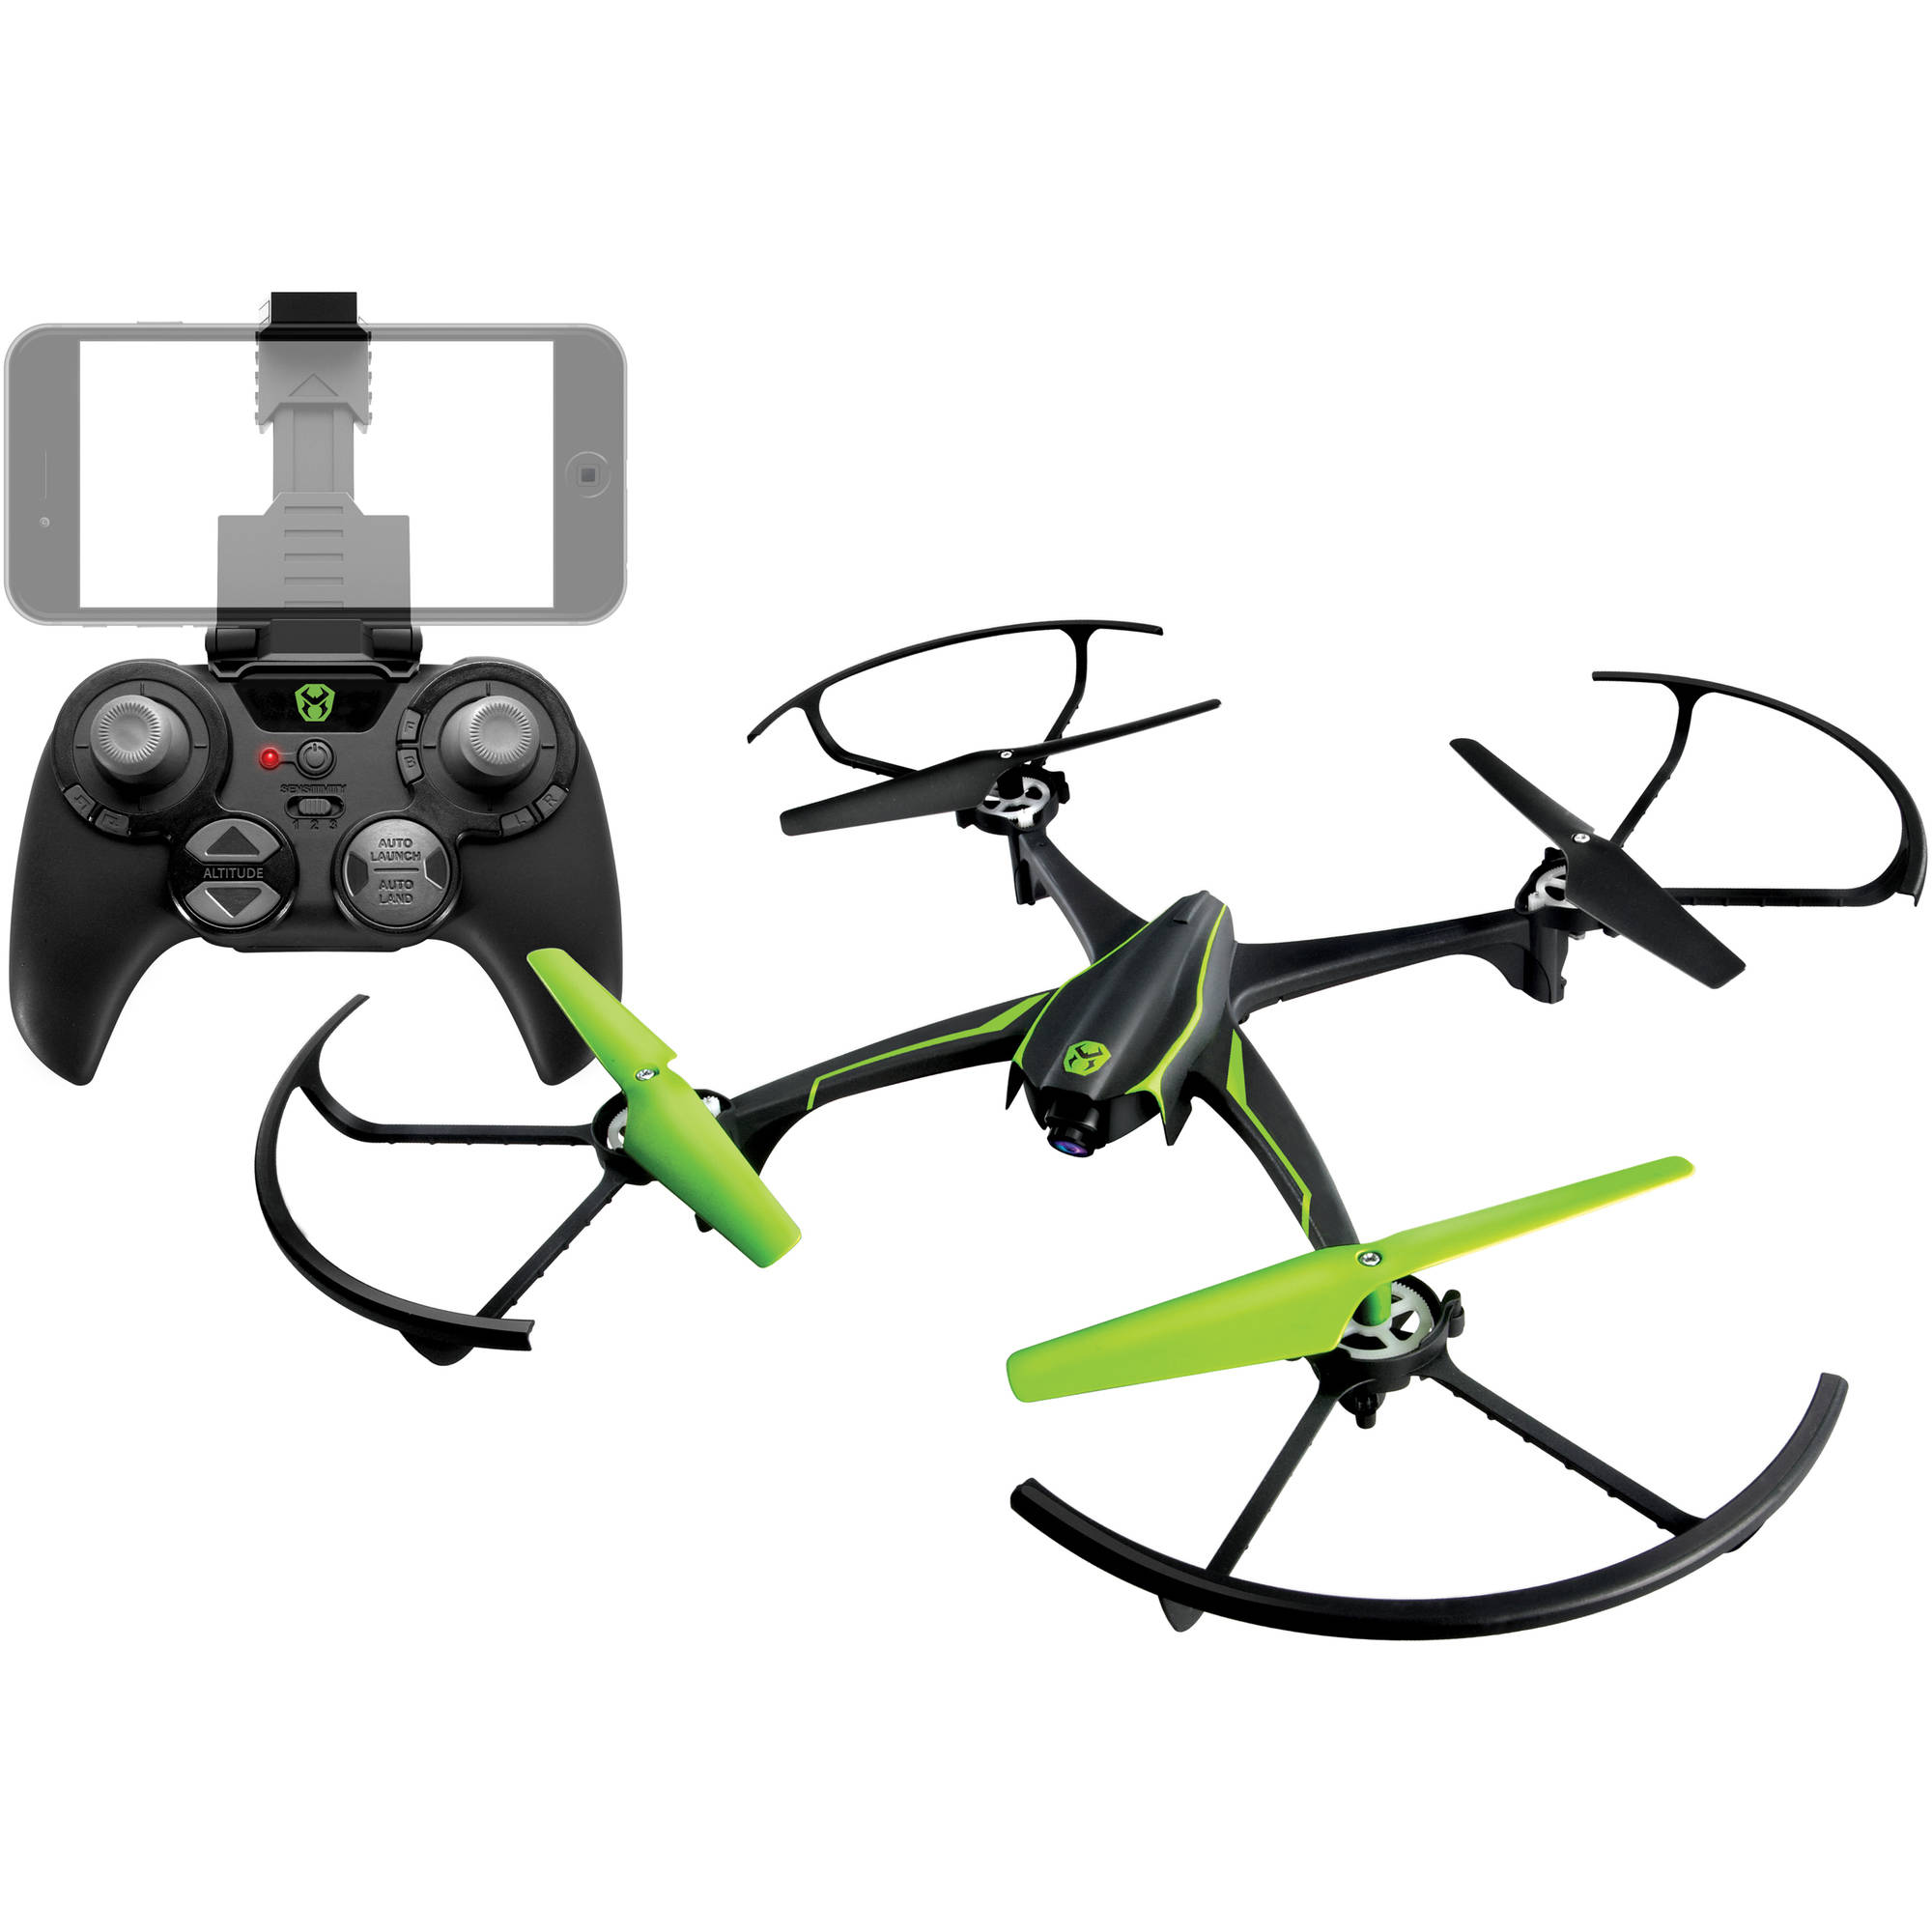 13ee0497 752a 4dd5 9047 eb52de99d257_1.1ba9e14afb353ce58710a1ab4527704f sky viper 2016 v2400 hd streaming video drone walmart com Drone with Camera at soozxer.org